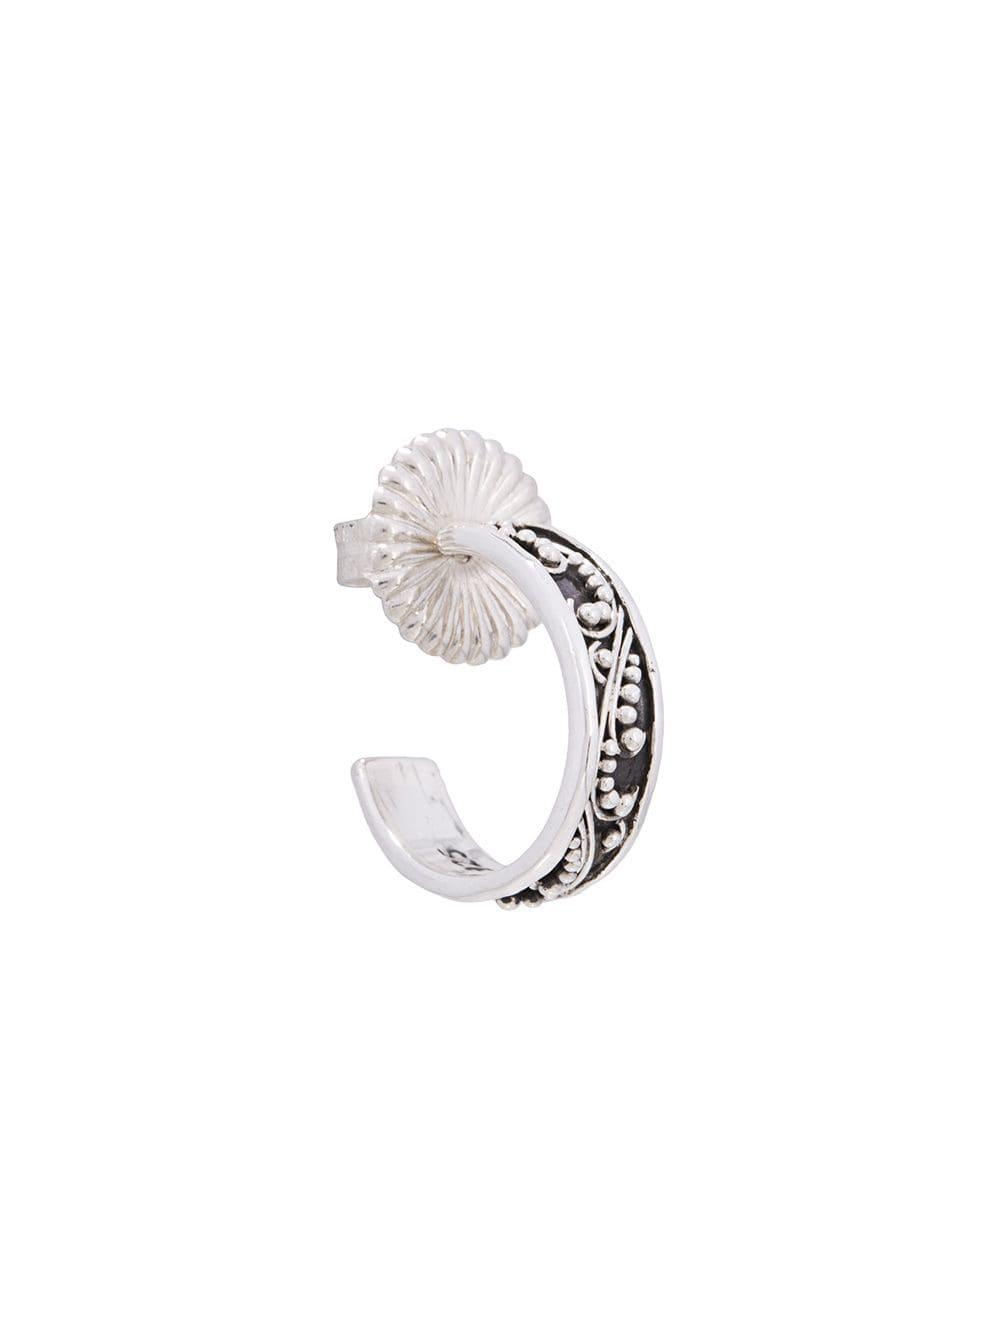 Lois Hill Craved Earring in Metallic